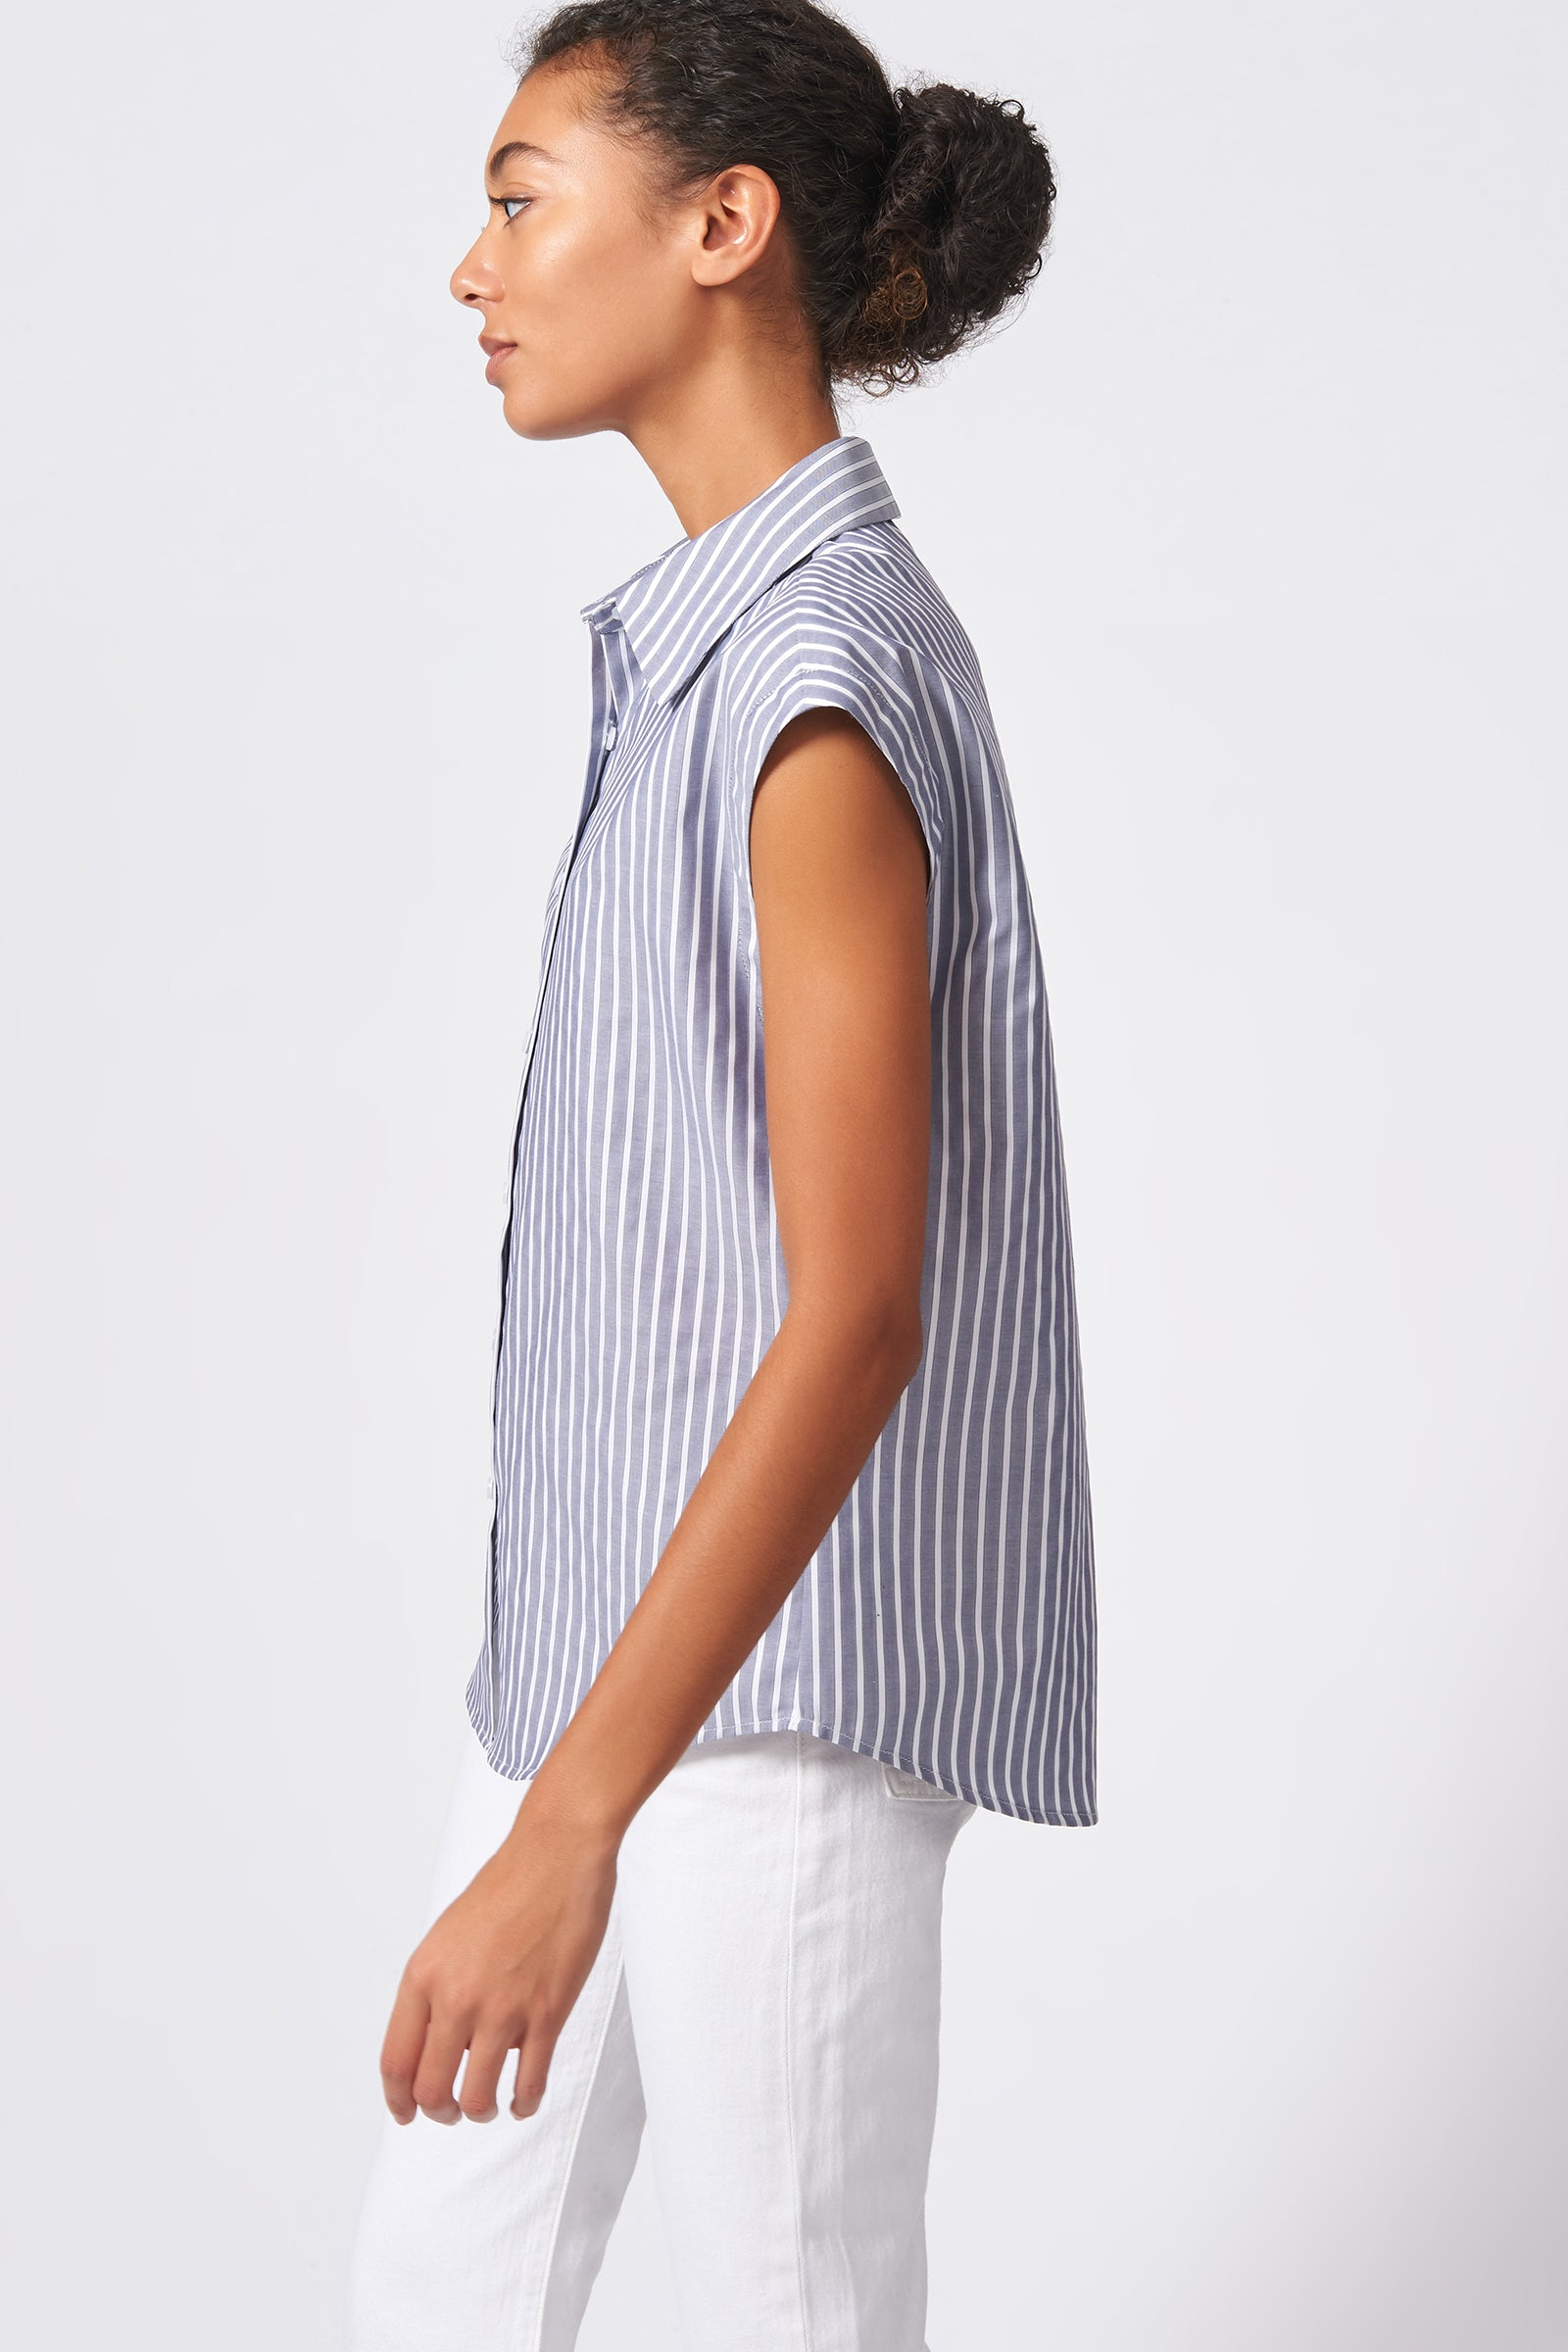 Kal Rieman Collared Cap Sleeve Shirt in Oxford Stripe on Model Side View